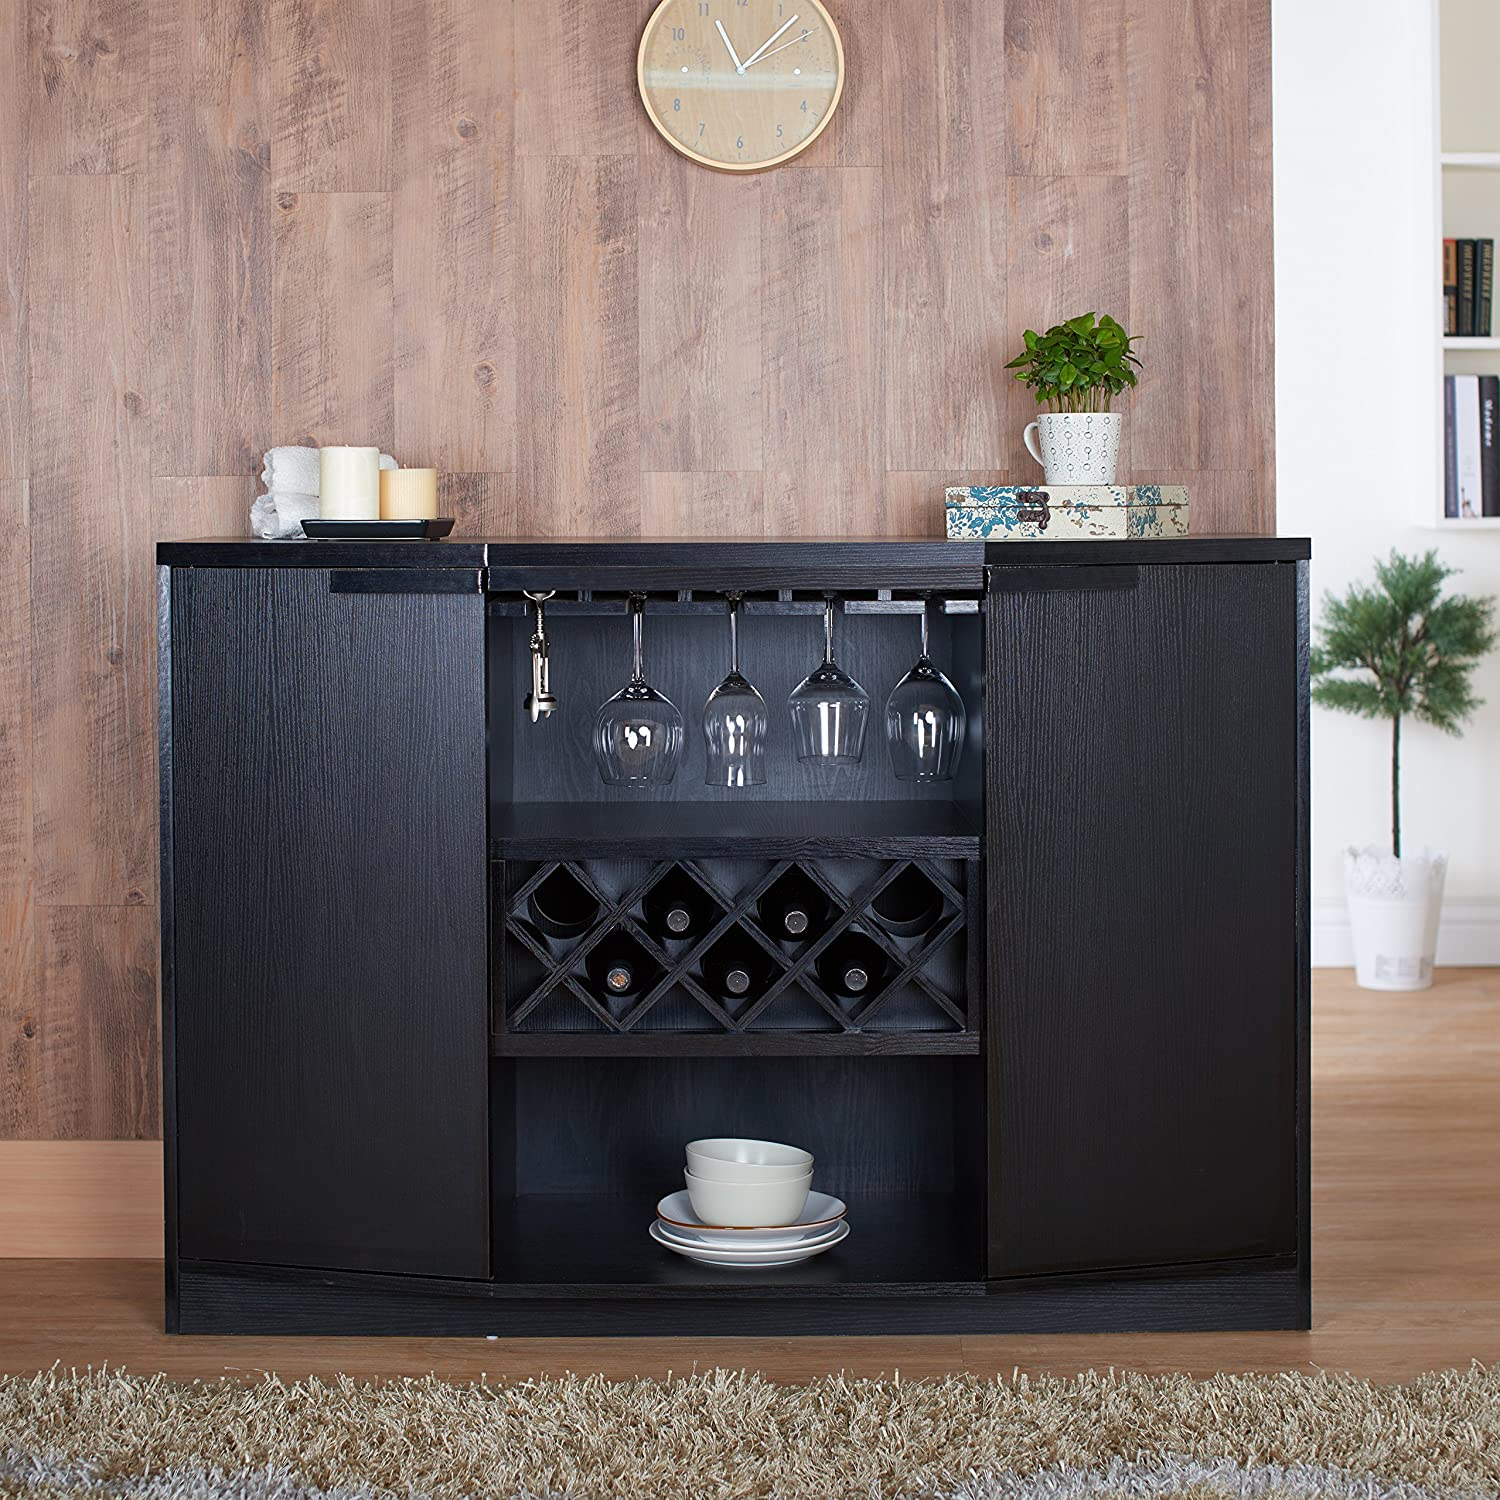 Amazon.com: Furniture of America Chapline Modern Wood Wine Bar Buffet with  Hanging Glass Racks: Kitchen & Dining - Amazon.com: Furniture Of America Chapline Modern Wood Wine Bar